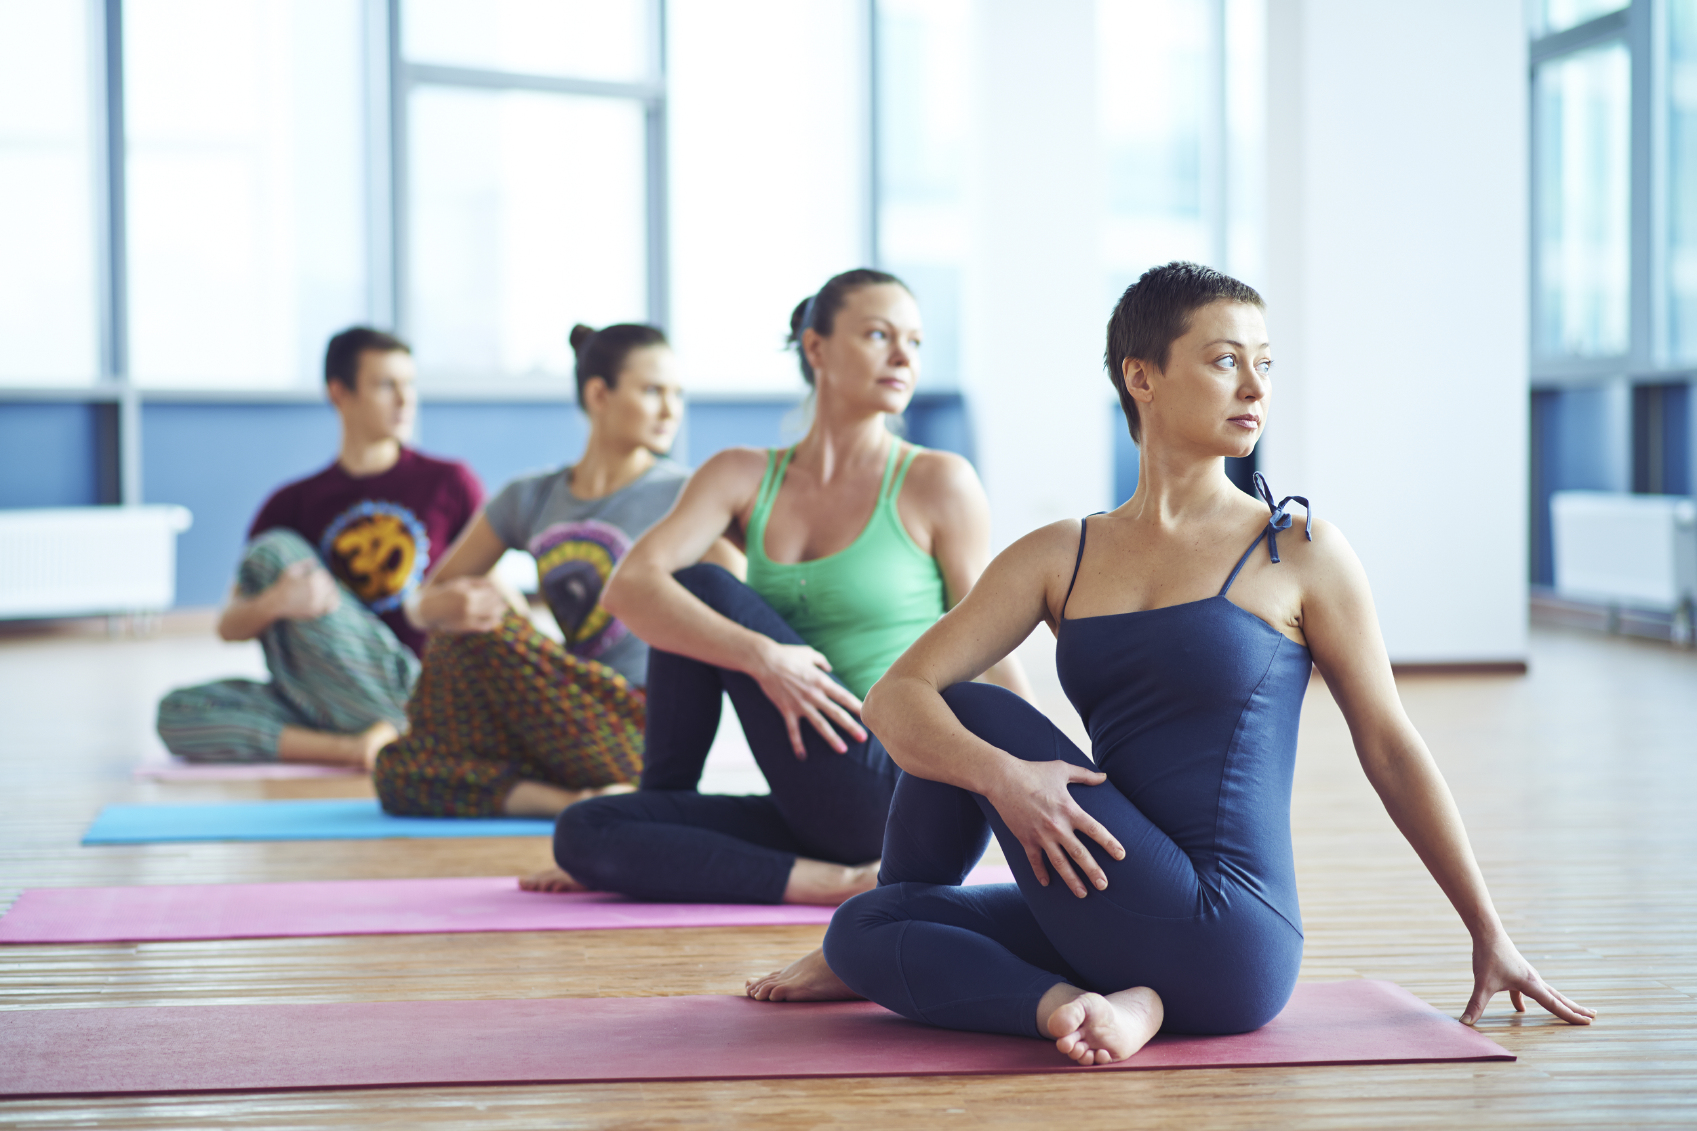 University of Ottawa student body to bring back free yoga ...